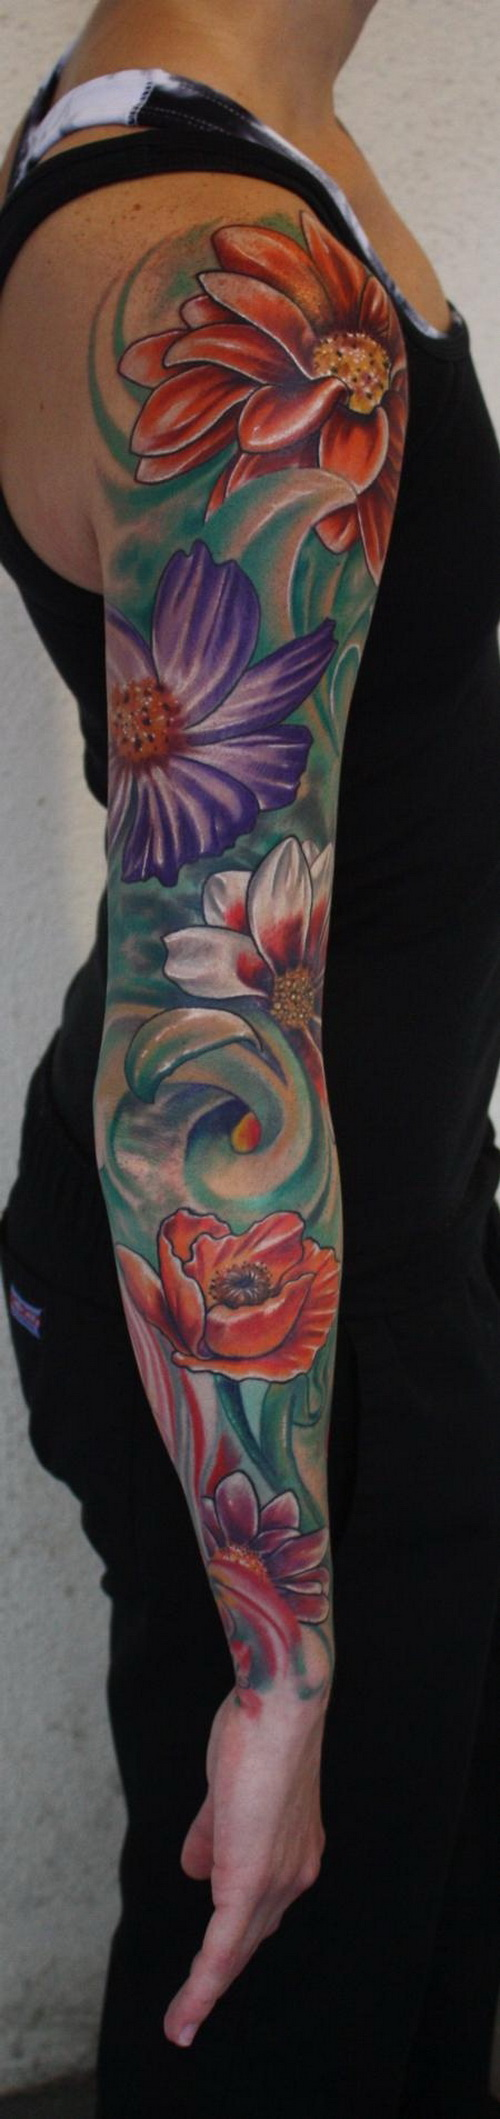 Flower Tattoo Sleeve For Men